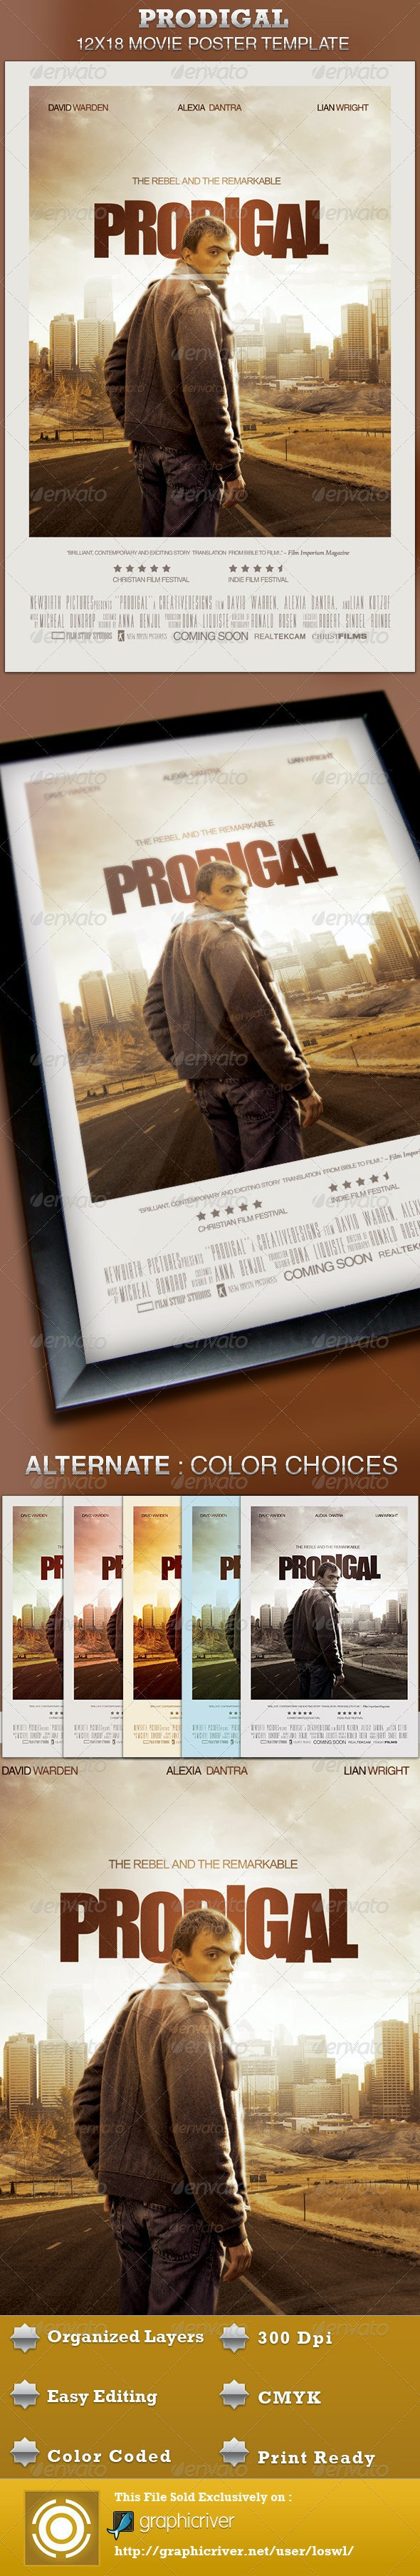 Prodigal Movie Poster Template - Church Flyers